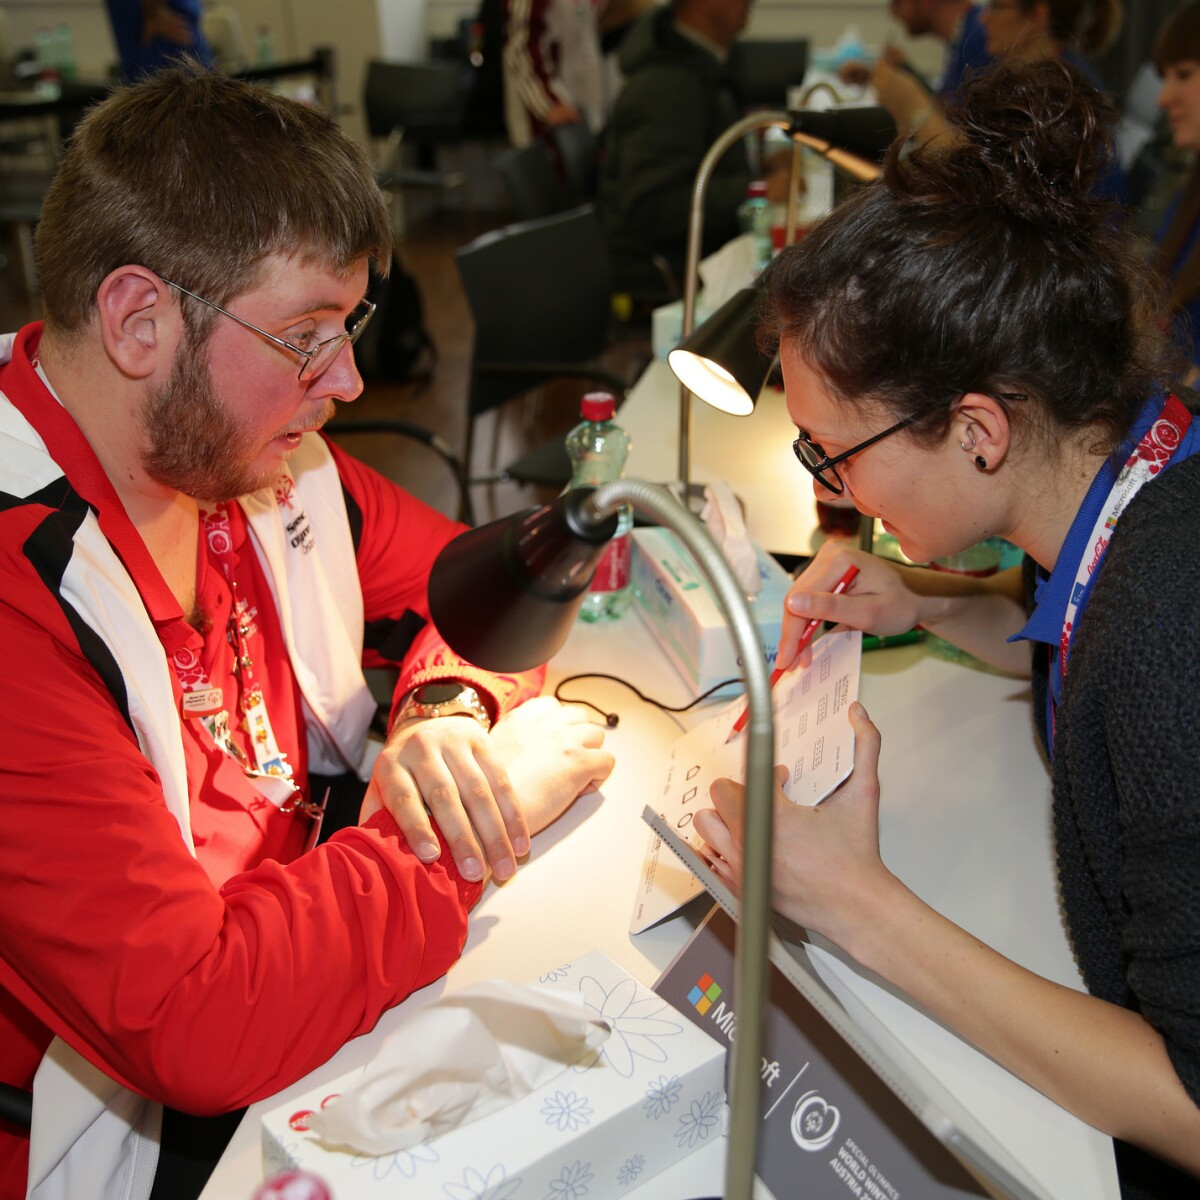 Austrian Athlete Herwig Worschitz Received a Health Athletes Opening Eyes Screening from a Volunteer at the 2017 World Winter Games in Austria